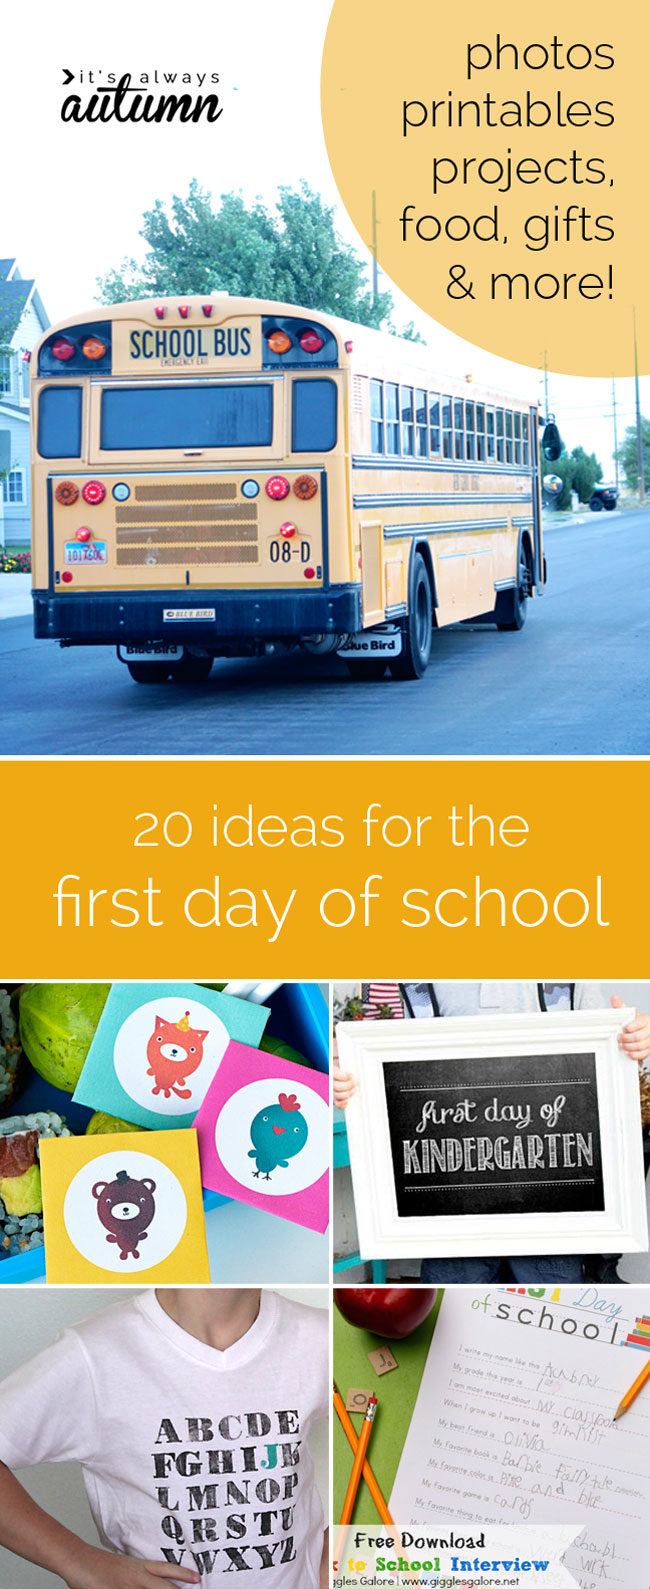 Great ideas for the first day of school outfits photos food gifts